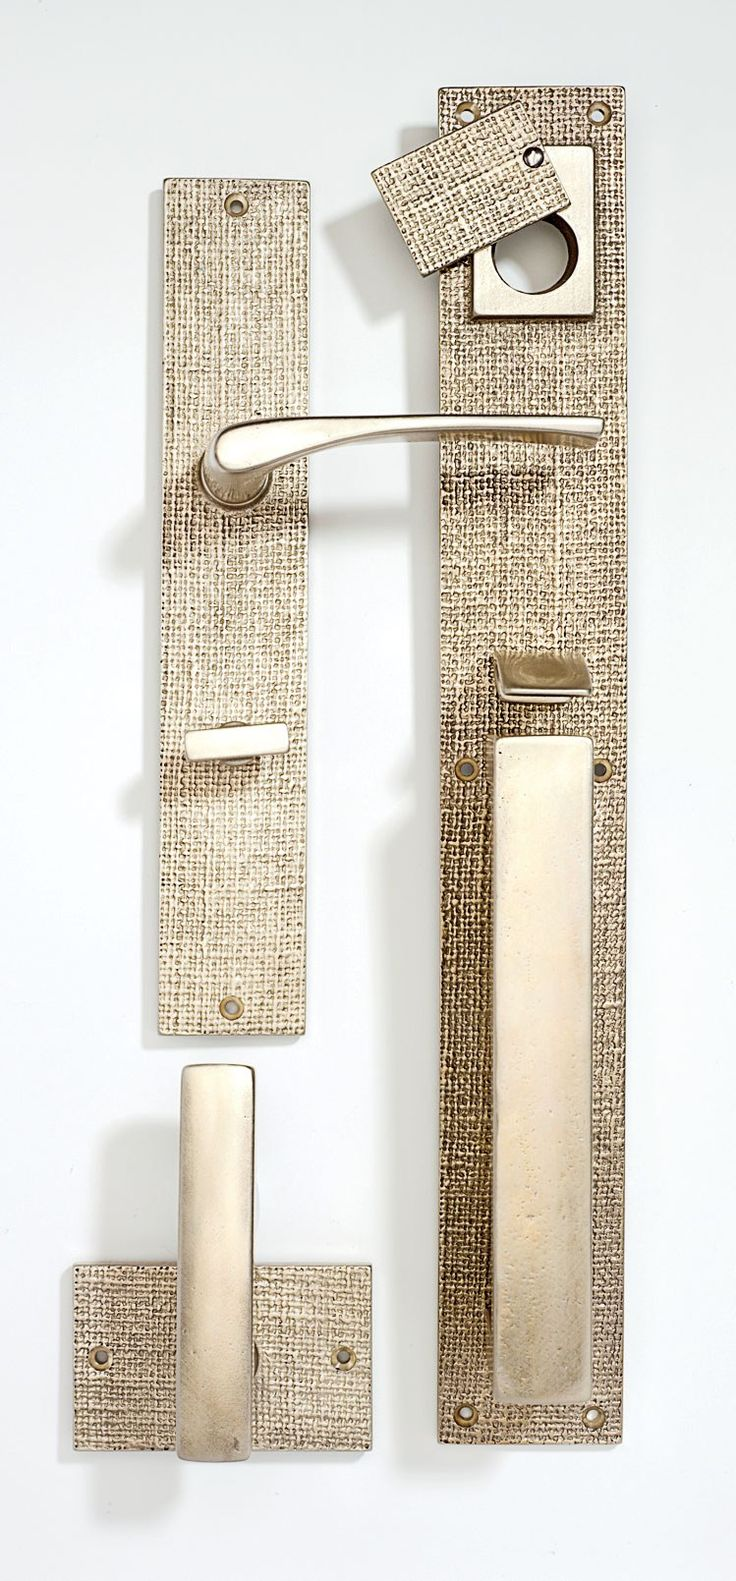 Smooth handles and locks are combined with strikingly textured plates in the Burlap hardware collection by Sun Valley Bronze. Clockwise from top left are the patio set ($781), the mortise-lock front-entry set ($1,552), and the tubular passage set ($512), all in white bronze. Ten finishes are offered. sunvalleybronze.com